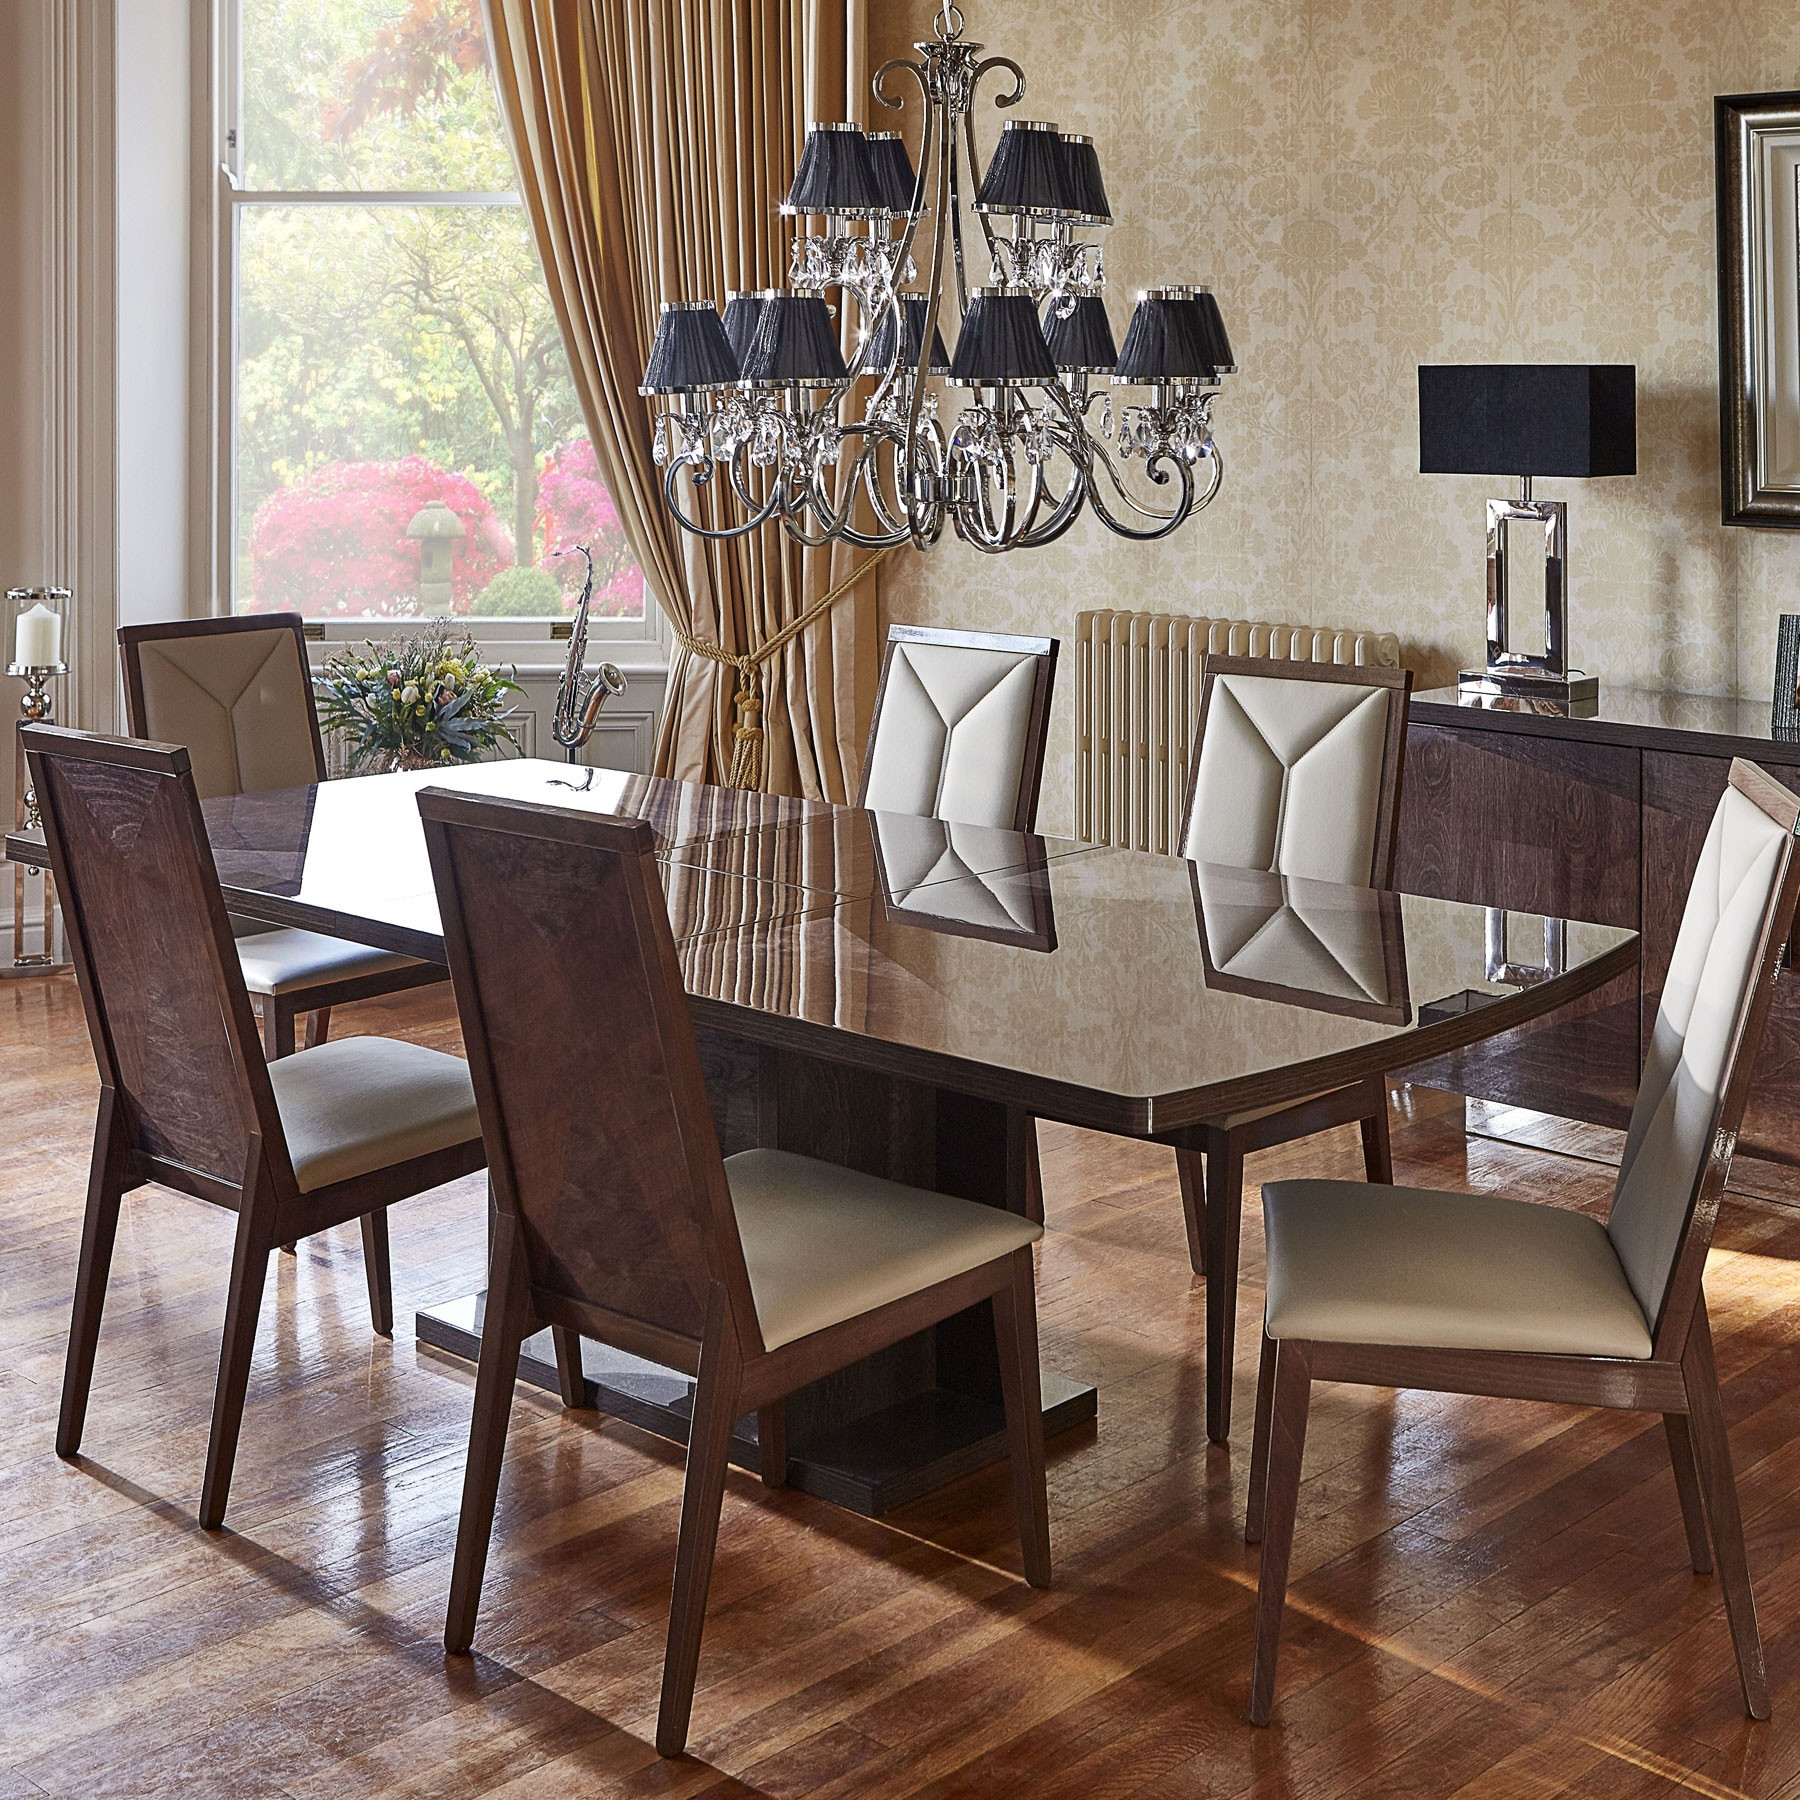 Vogue High Gloss Extending Dining Table & 6 Chairs For Most Recently Released High Gloss Dining Tables And Chairs (View 17 of 25)